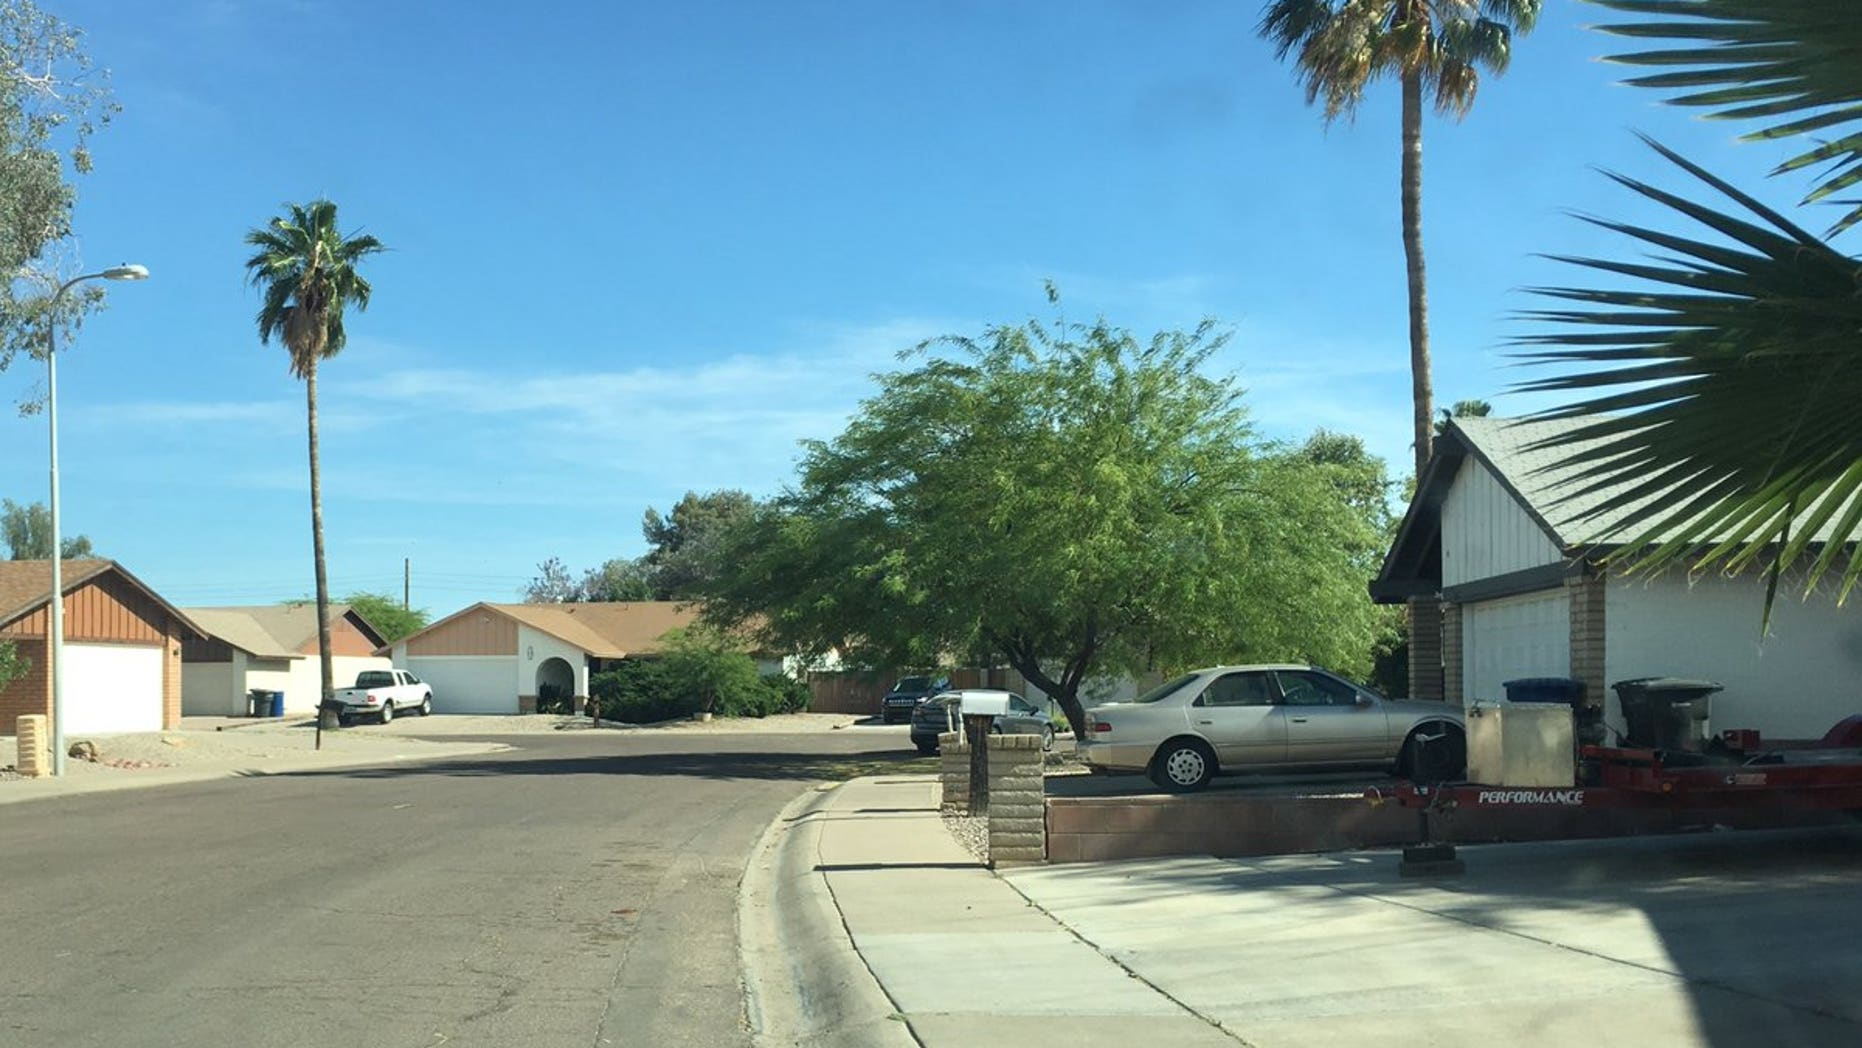 The scene of the kidnapping attempt in Chandler.